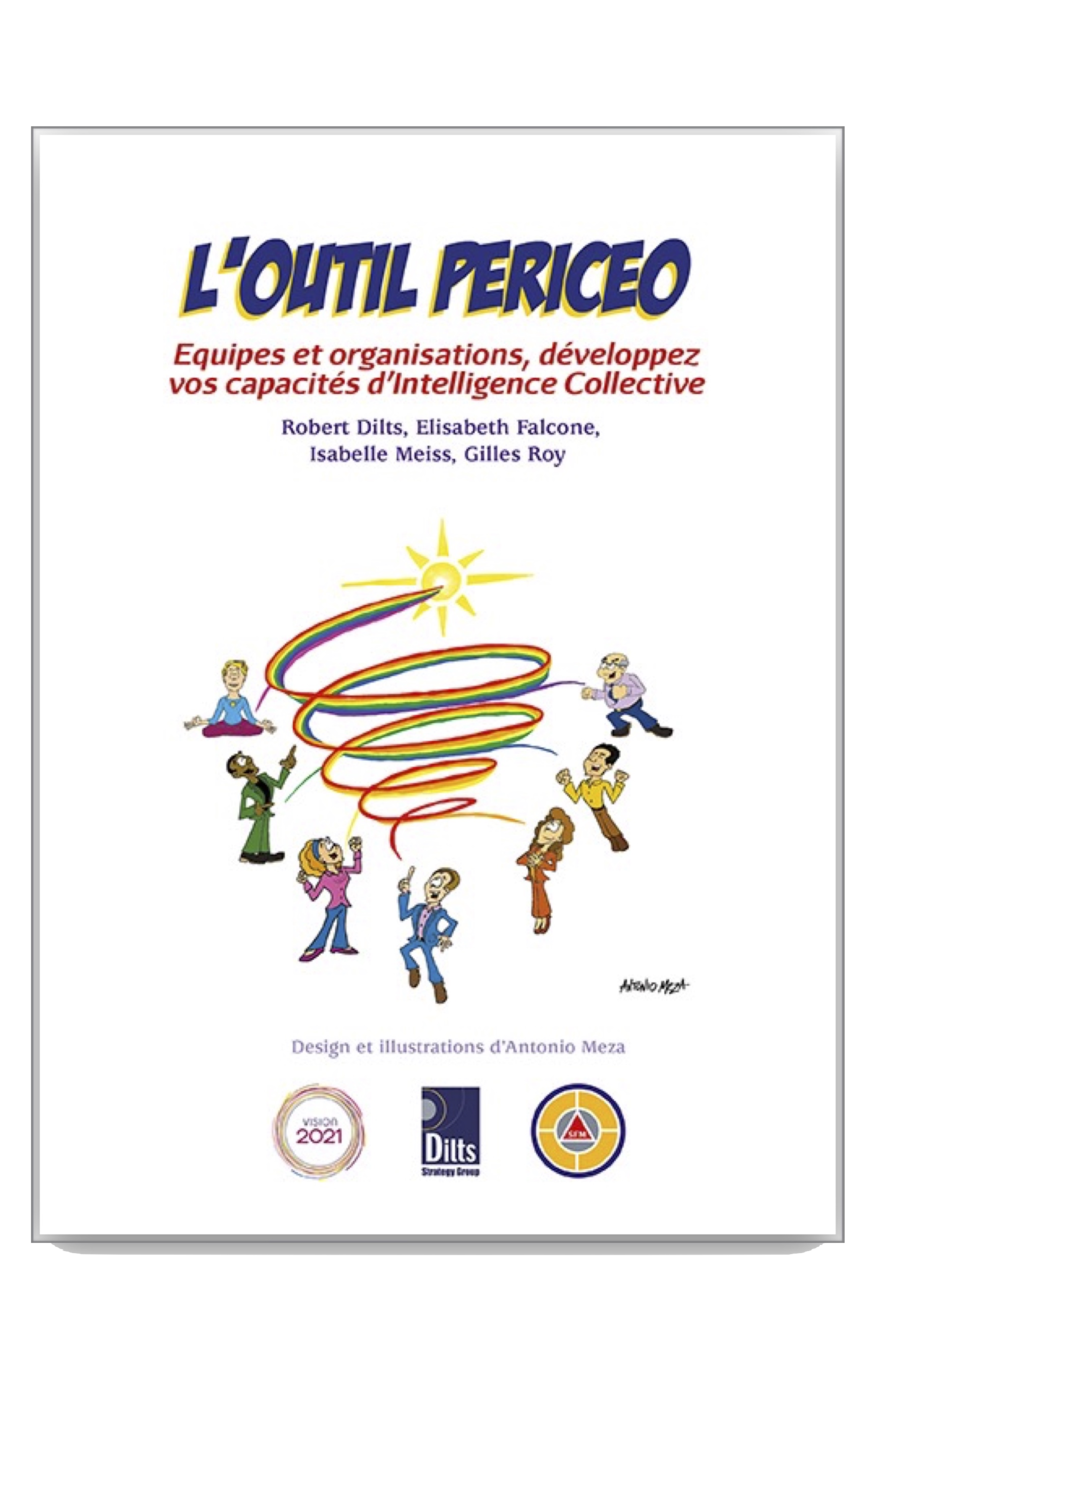 The PERICEO Tool (l'Outil PERICEO)